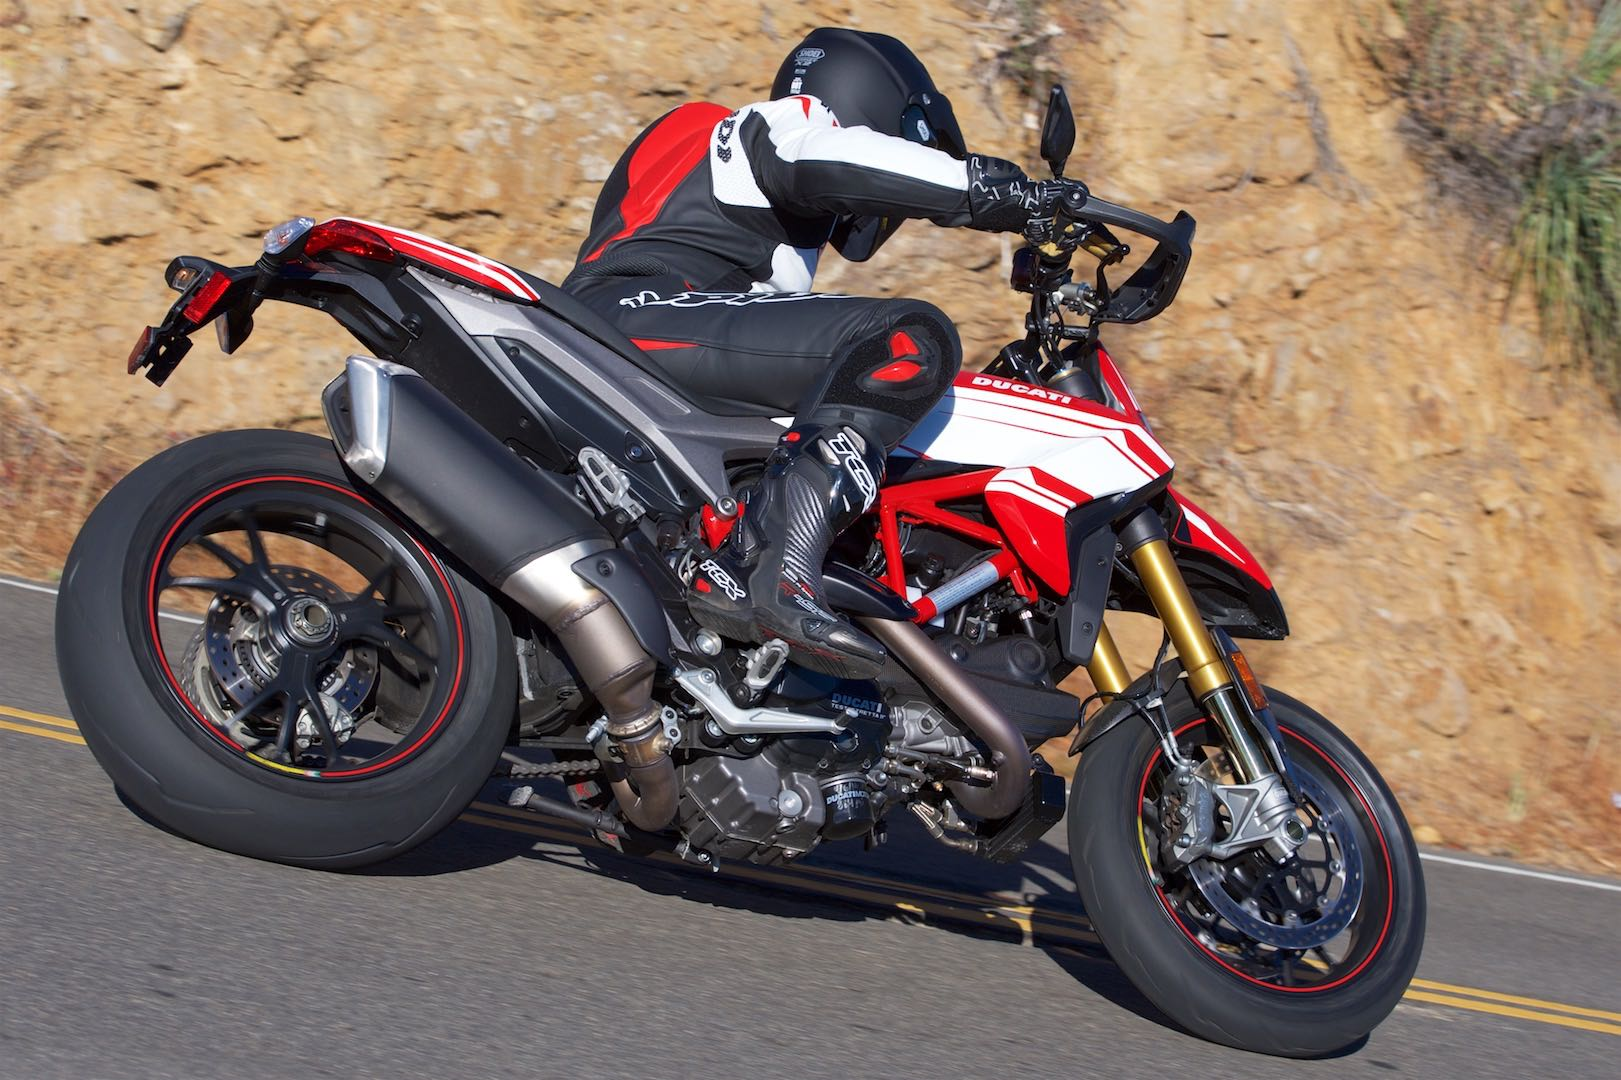 2016 Ducati Hypermotard 939 SP top speed